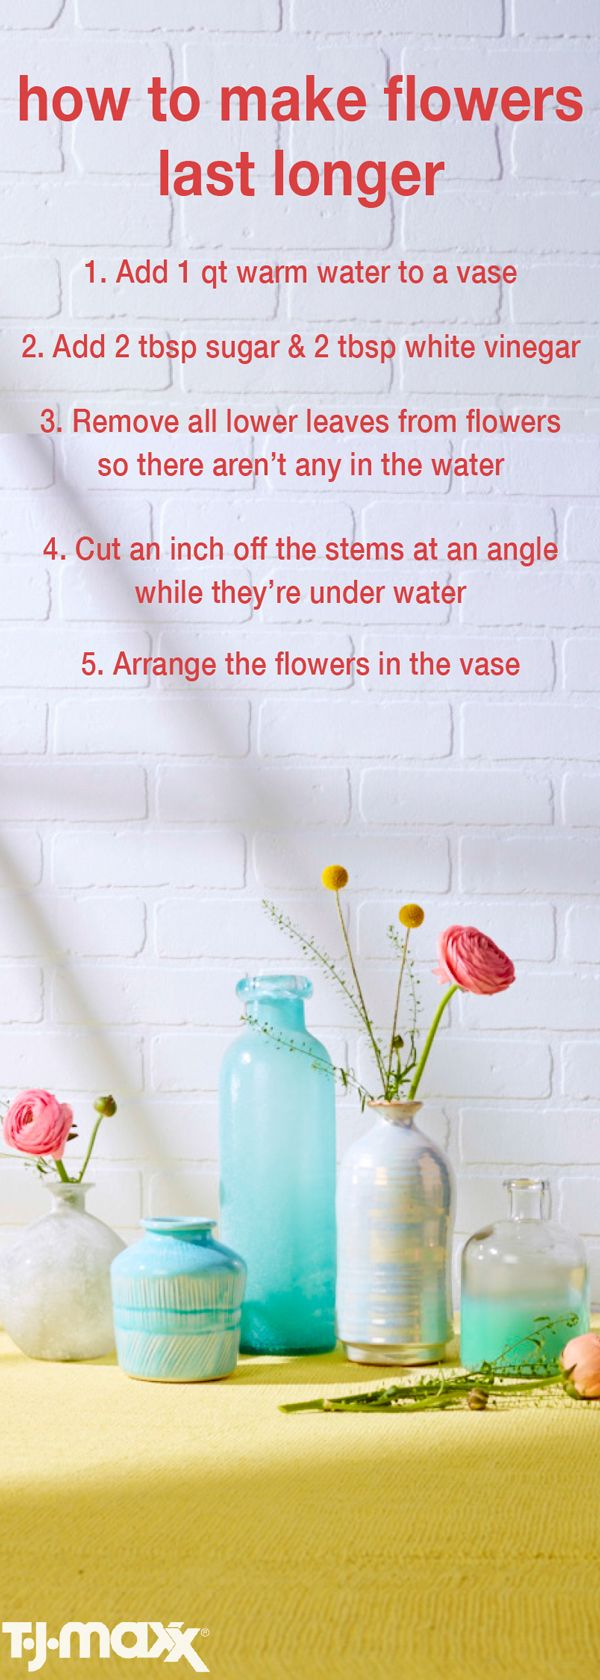 Long-Lasting Mother's Day Flowers: Get the most of out your Mother's Day bouquet this year. Use the above tips & tricks to keep your flowers fresher for longer. Shop TJMaxx.com for flower vases and more.